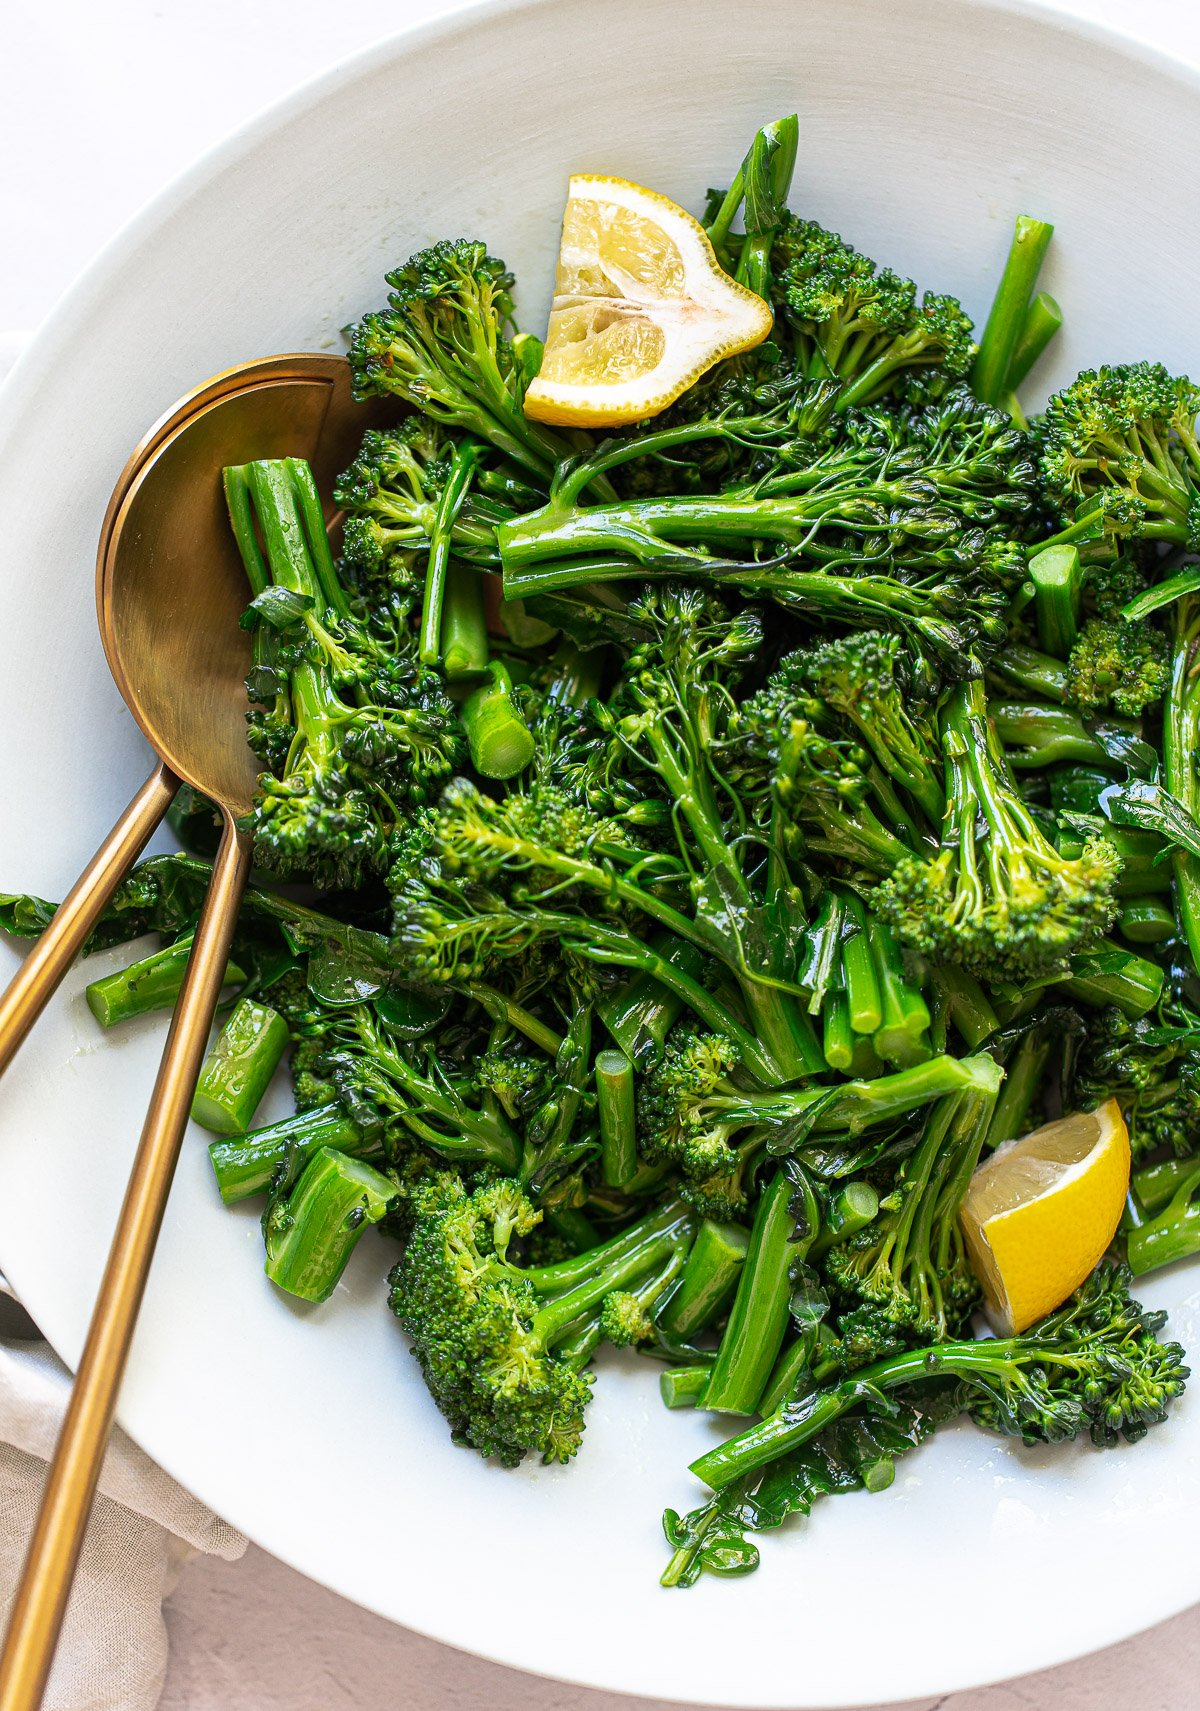 Image - A round gray serving bowl with cooked broccoli sprouts and stems, with serving spoons and lemon wedges.